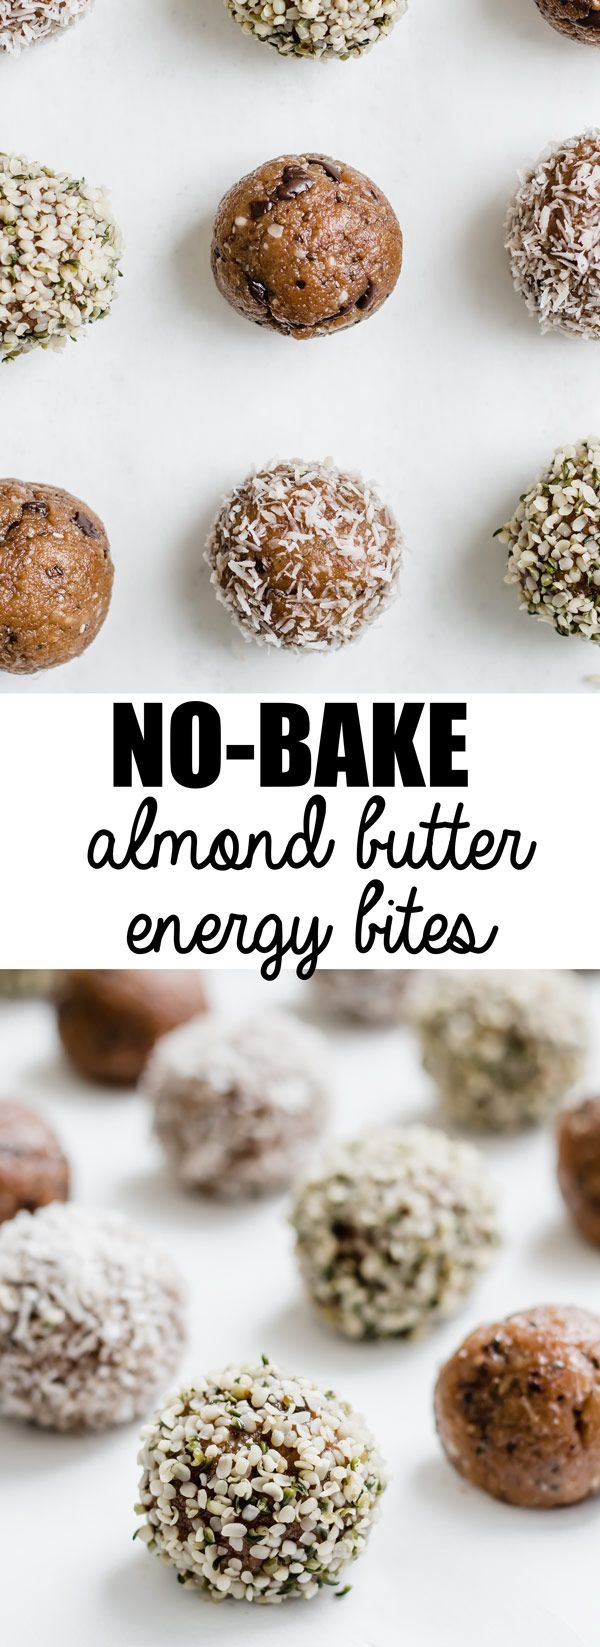 These no-bake almond butter energy bites area a healthy snack that is easy to make! They are also vegan, gluten-free, and paleo!